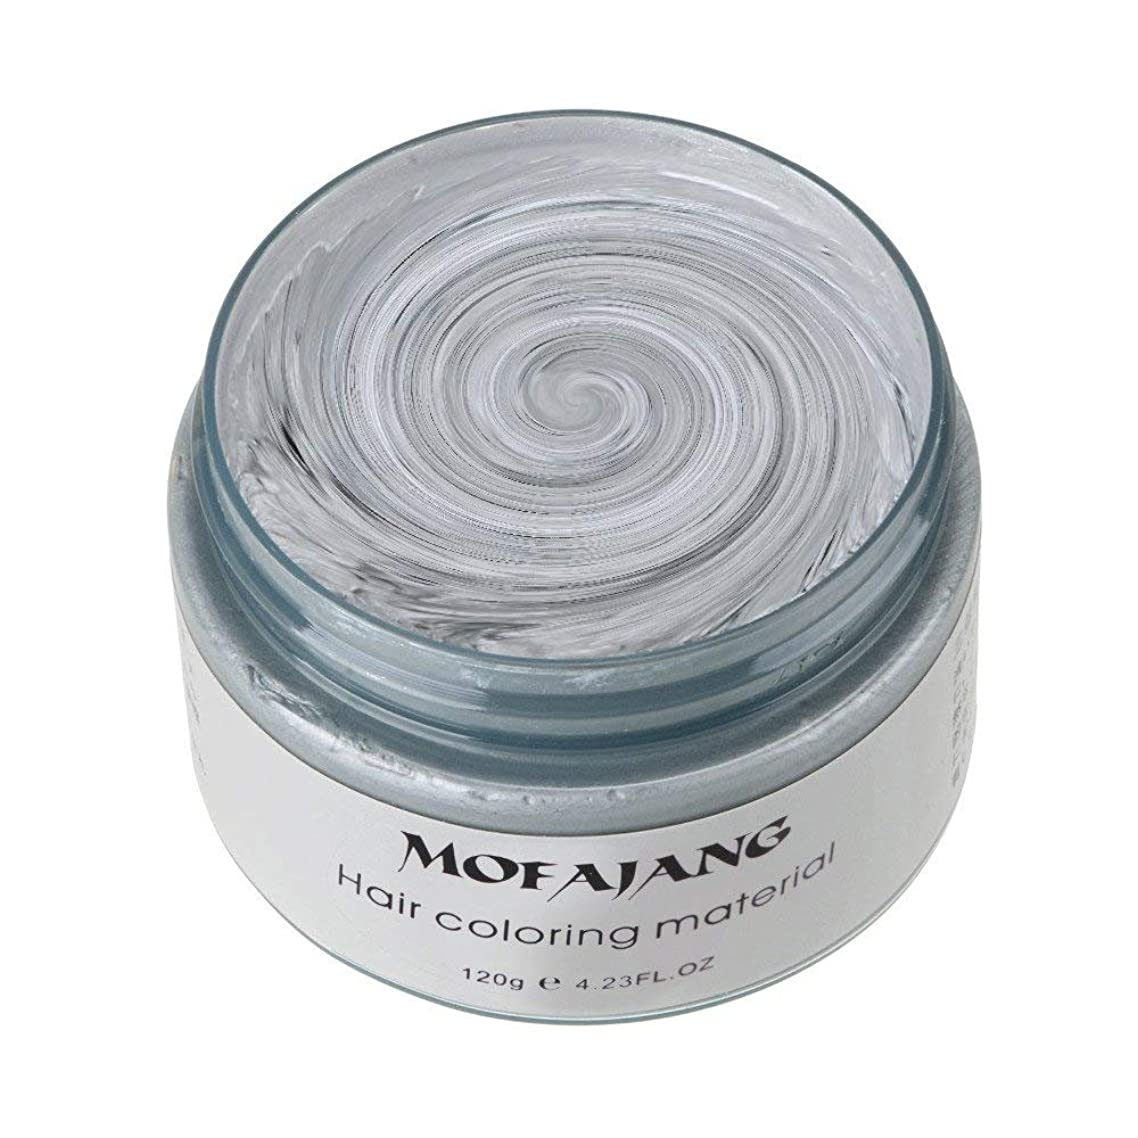 MOFAJANG Unisex Hair Wax Color Dye Styling Cream Mud, Natural Hairstyle Pomade, Washable Temporary,Party Cosplay (Ash Matte Grey)